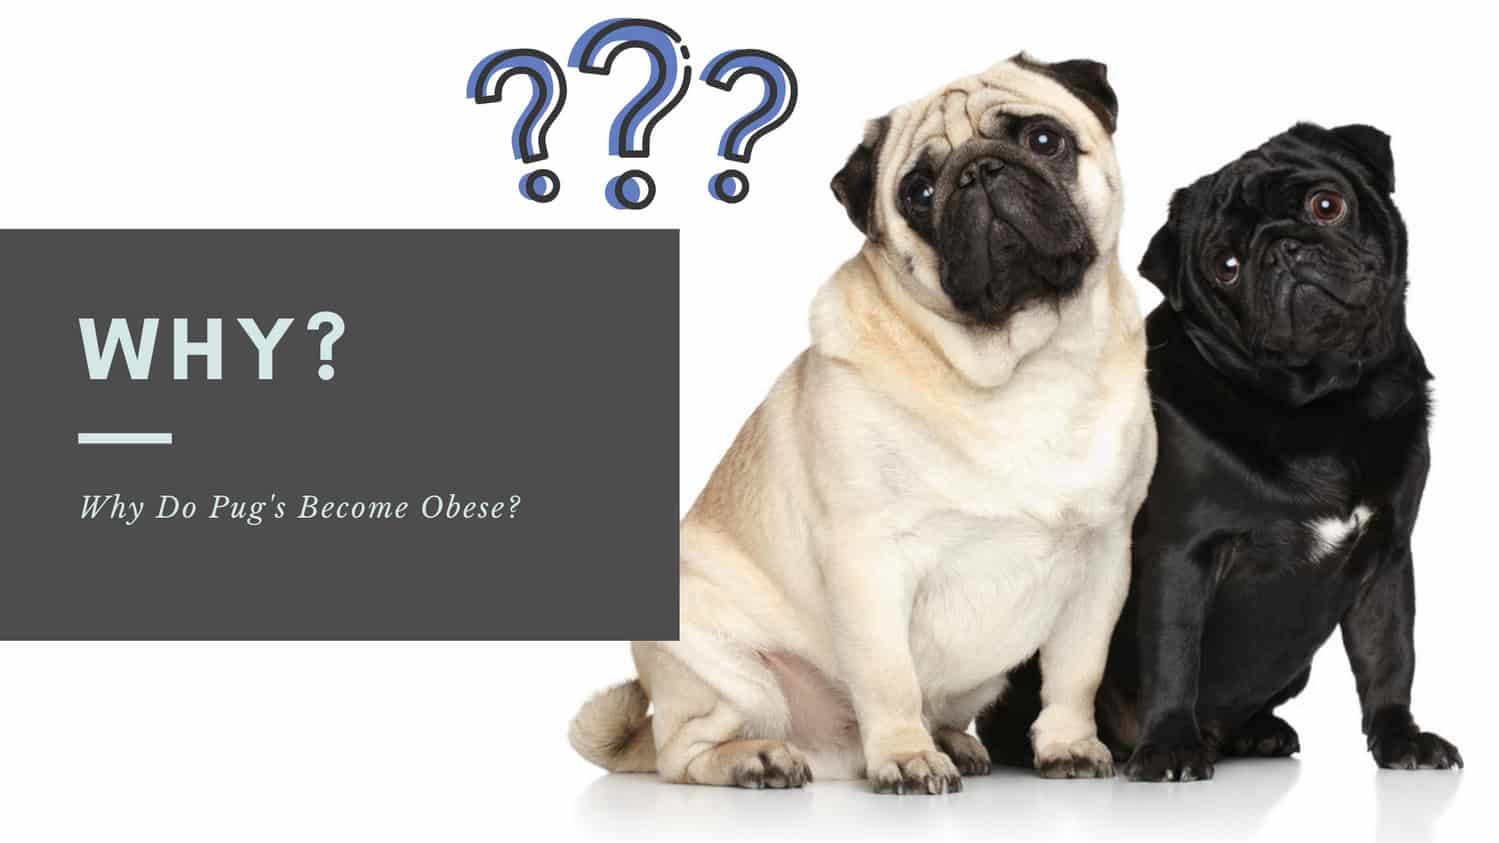 Why Do Pug's Become Obese?